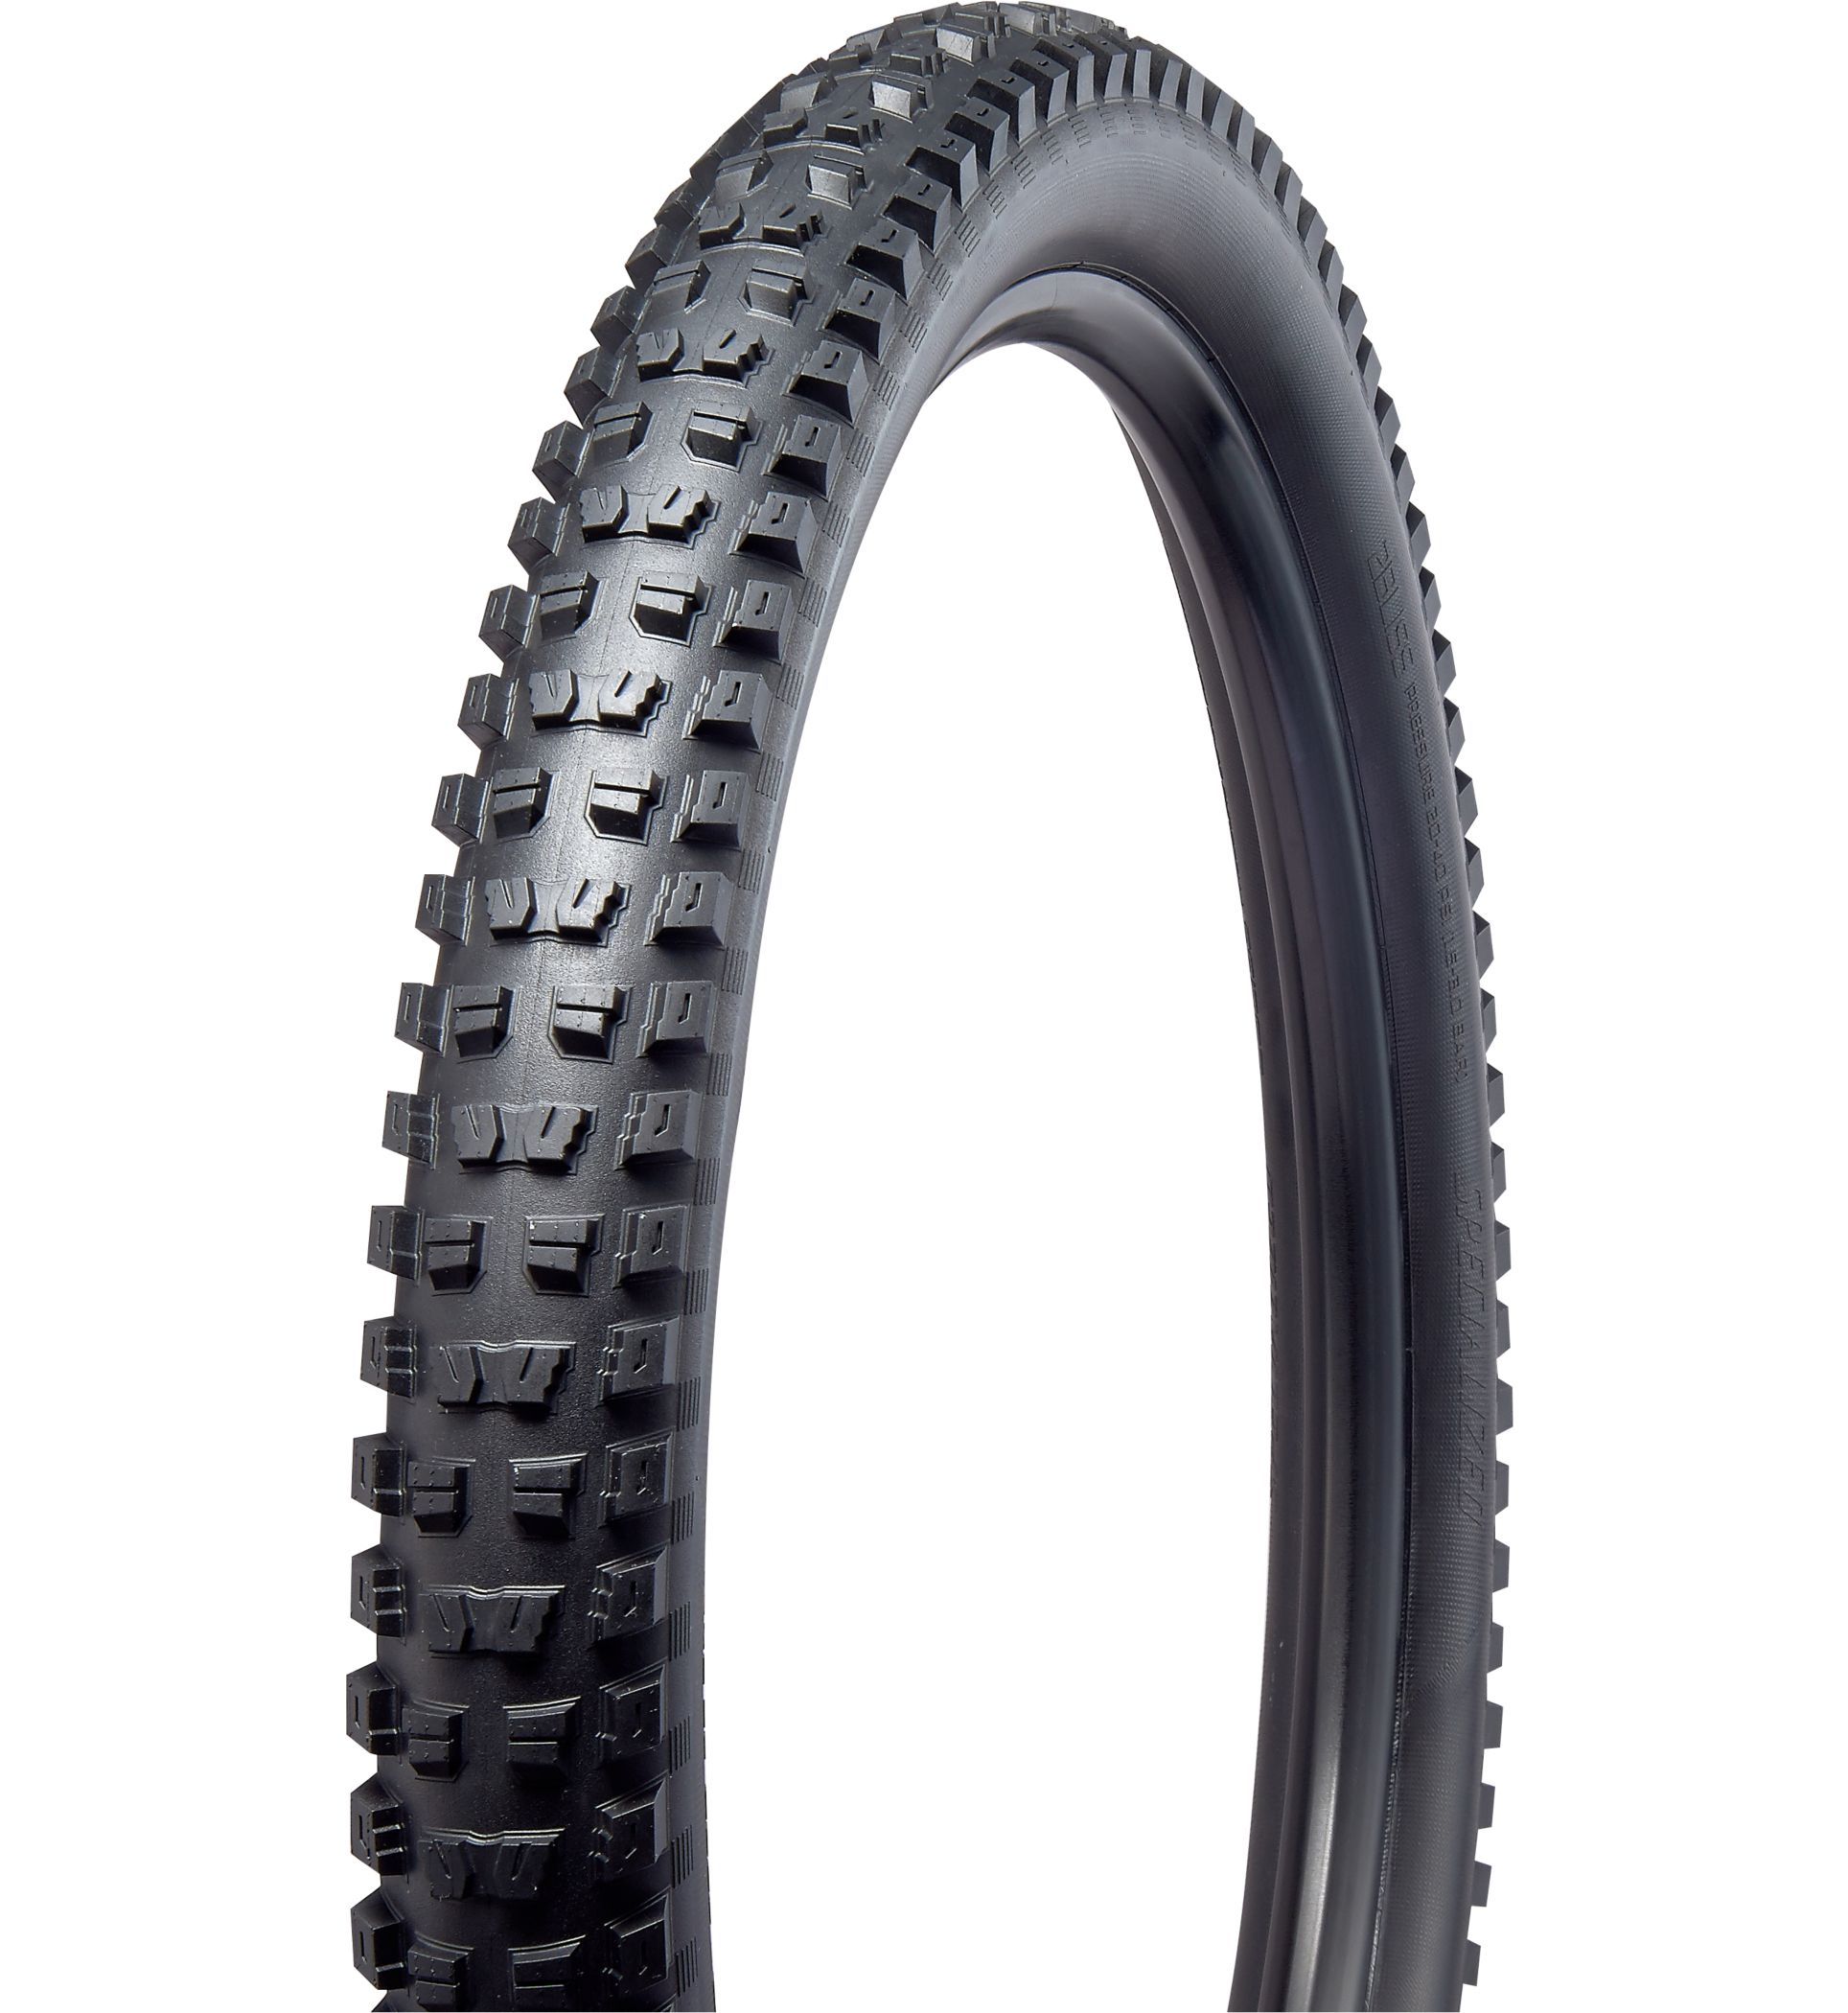 Specialized Butcher Grid 27.5/650bx2.6 Inch Trail 2bliss Ready Mtb Tyre 2020 | Tyres